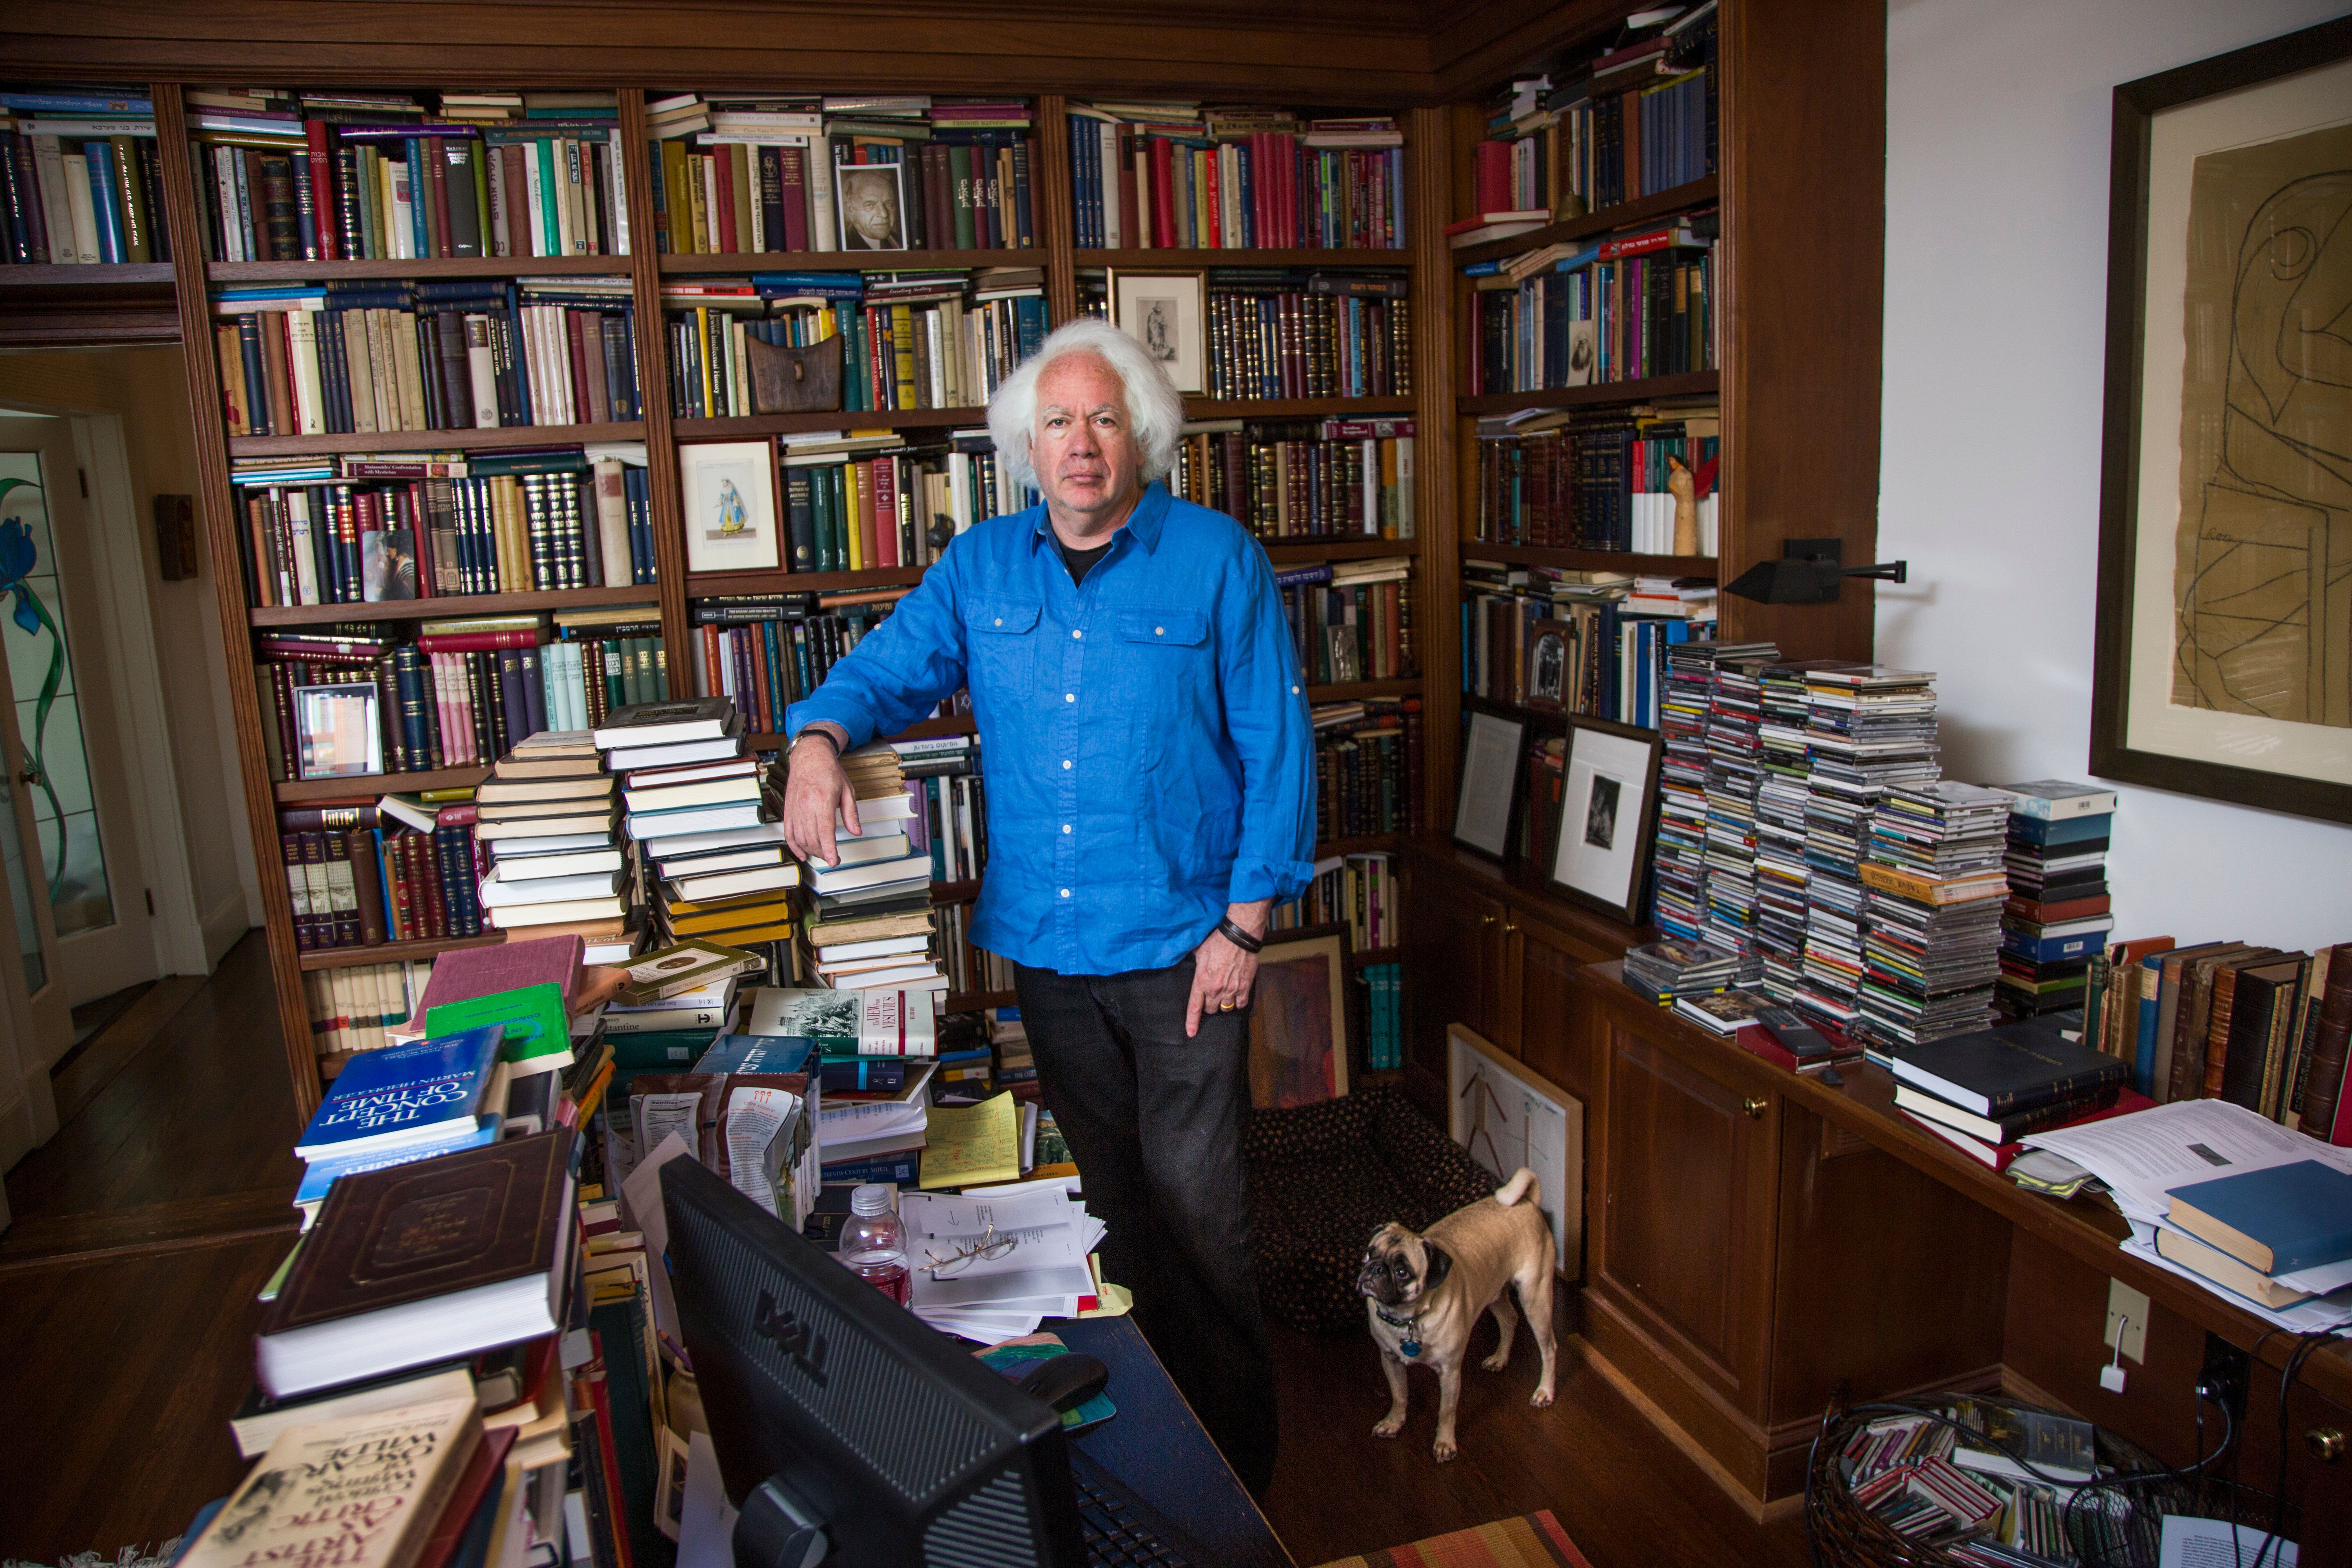 American author and literary critic Leon Wieseltier at his home in Washington, DC. Wieseltier is the long-serving literary editor at the New Republic has won the Israel Dan David Prize Board in 2013 for being 'a foremost writer and thinker who confronts and engages with the central issues of our times, setting the standard for serious cultural discussion in the United States.' (Photo by Brooks Kraft LLC/Corbis via Getty Images)